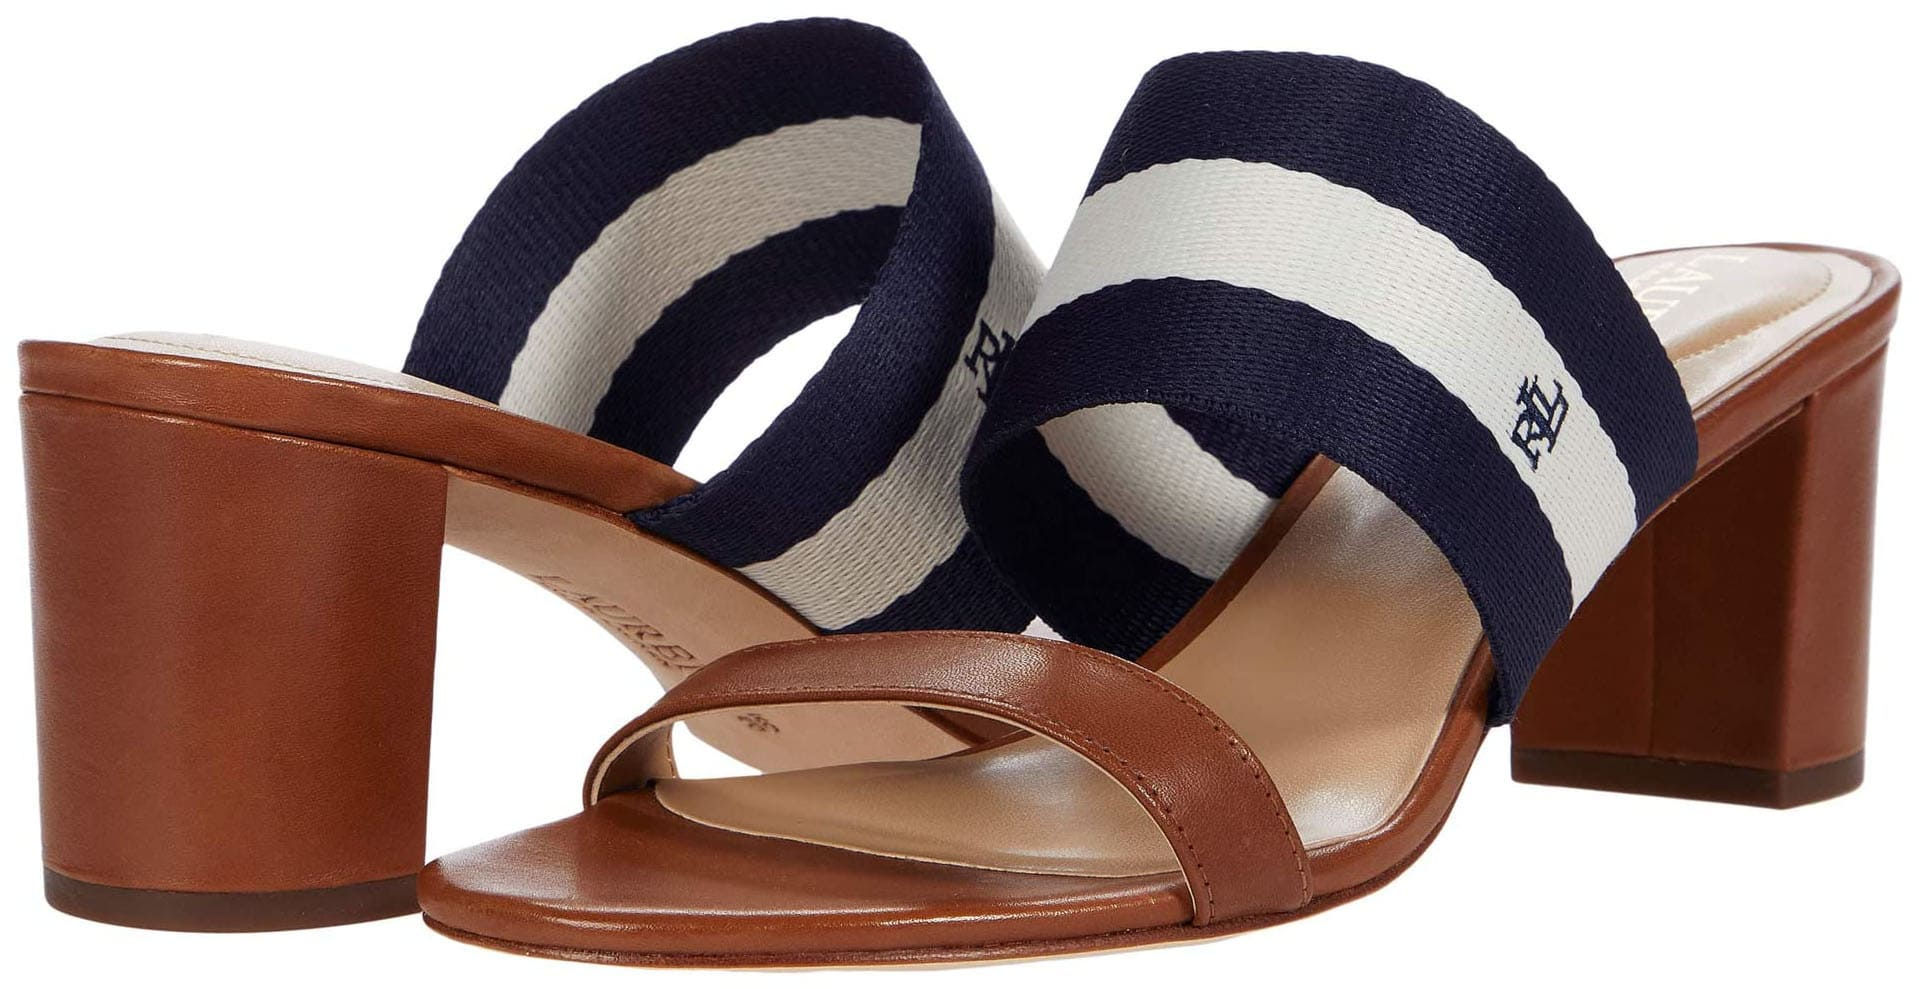 The Whitfield sandals will add a nautical finish to any look